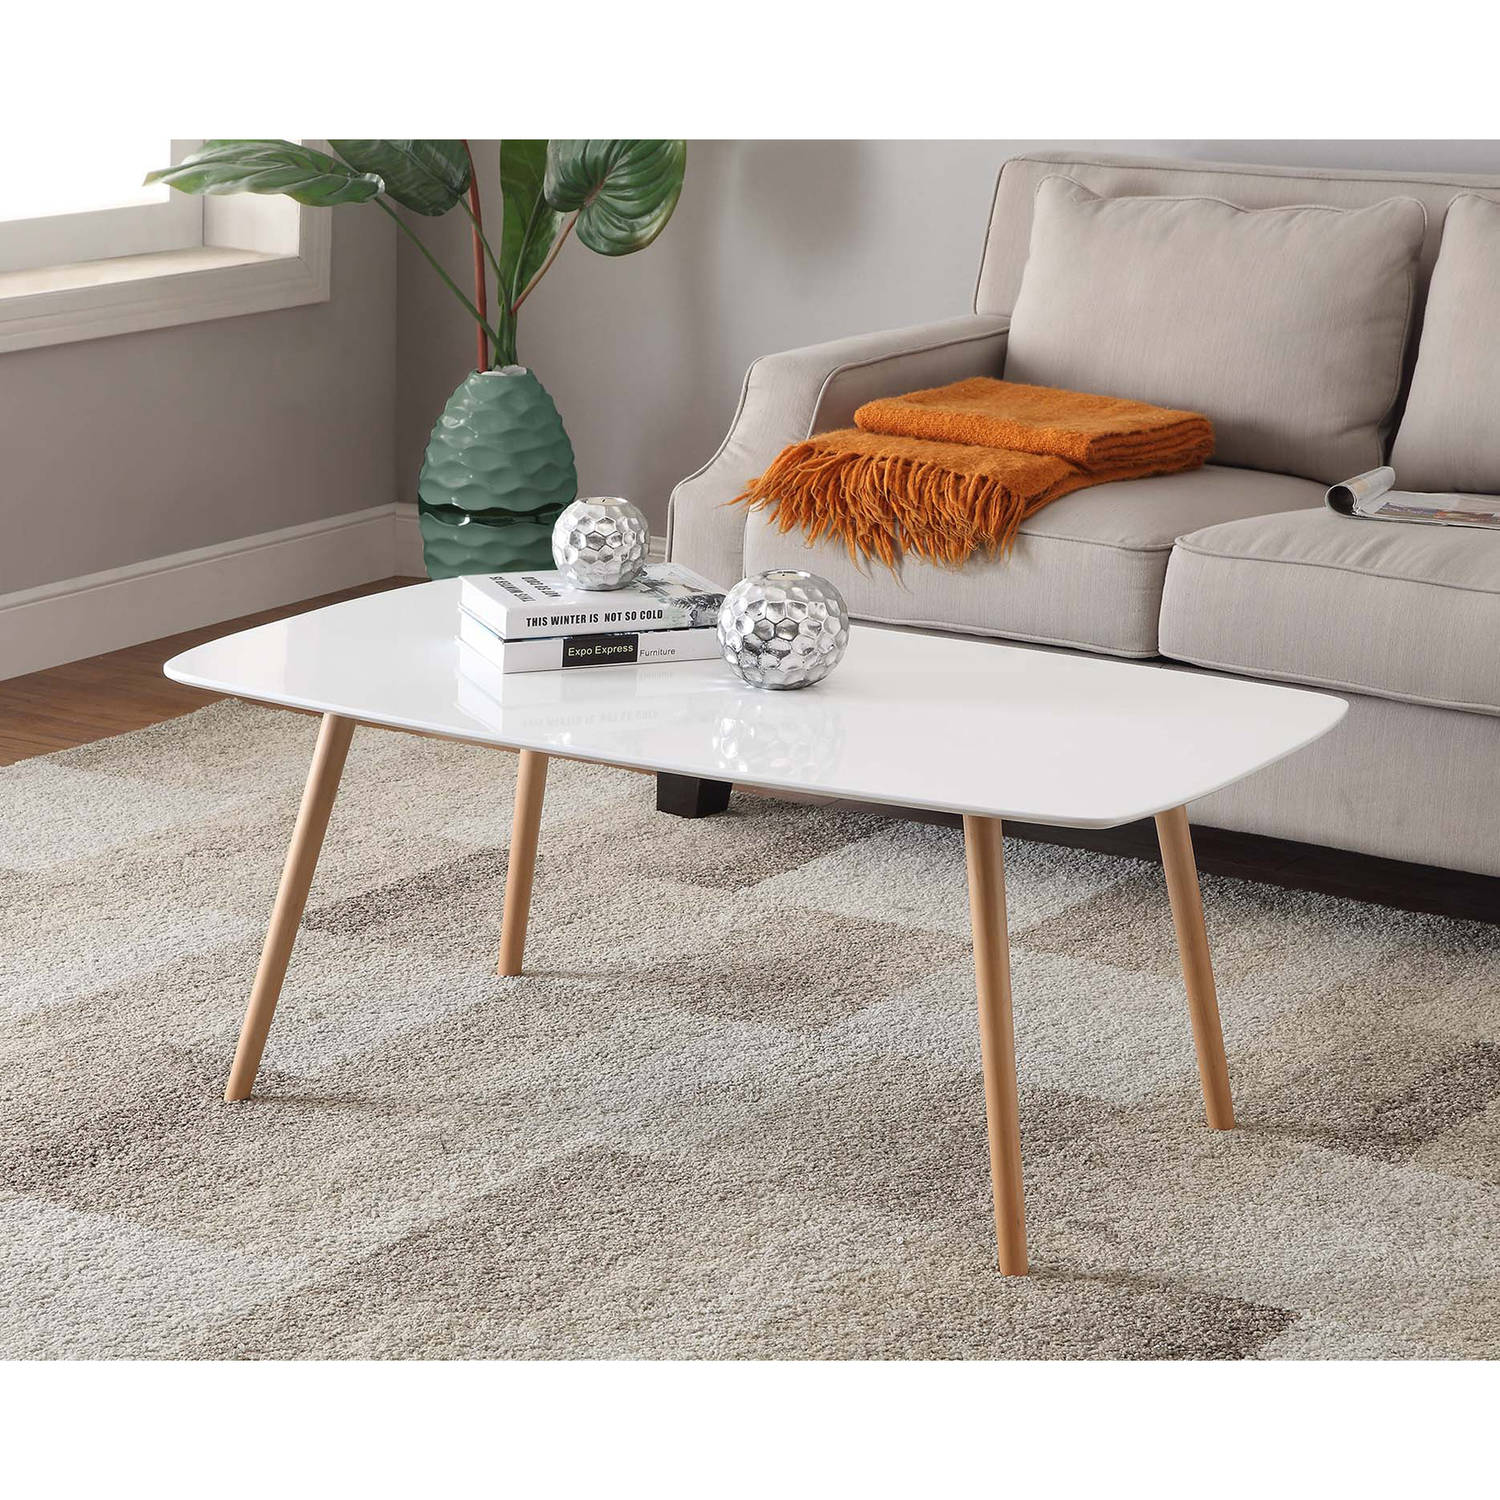 Convenience Concepts No Tools Oslo Coffee Table, Multiple Colors